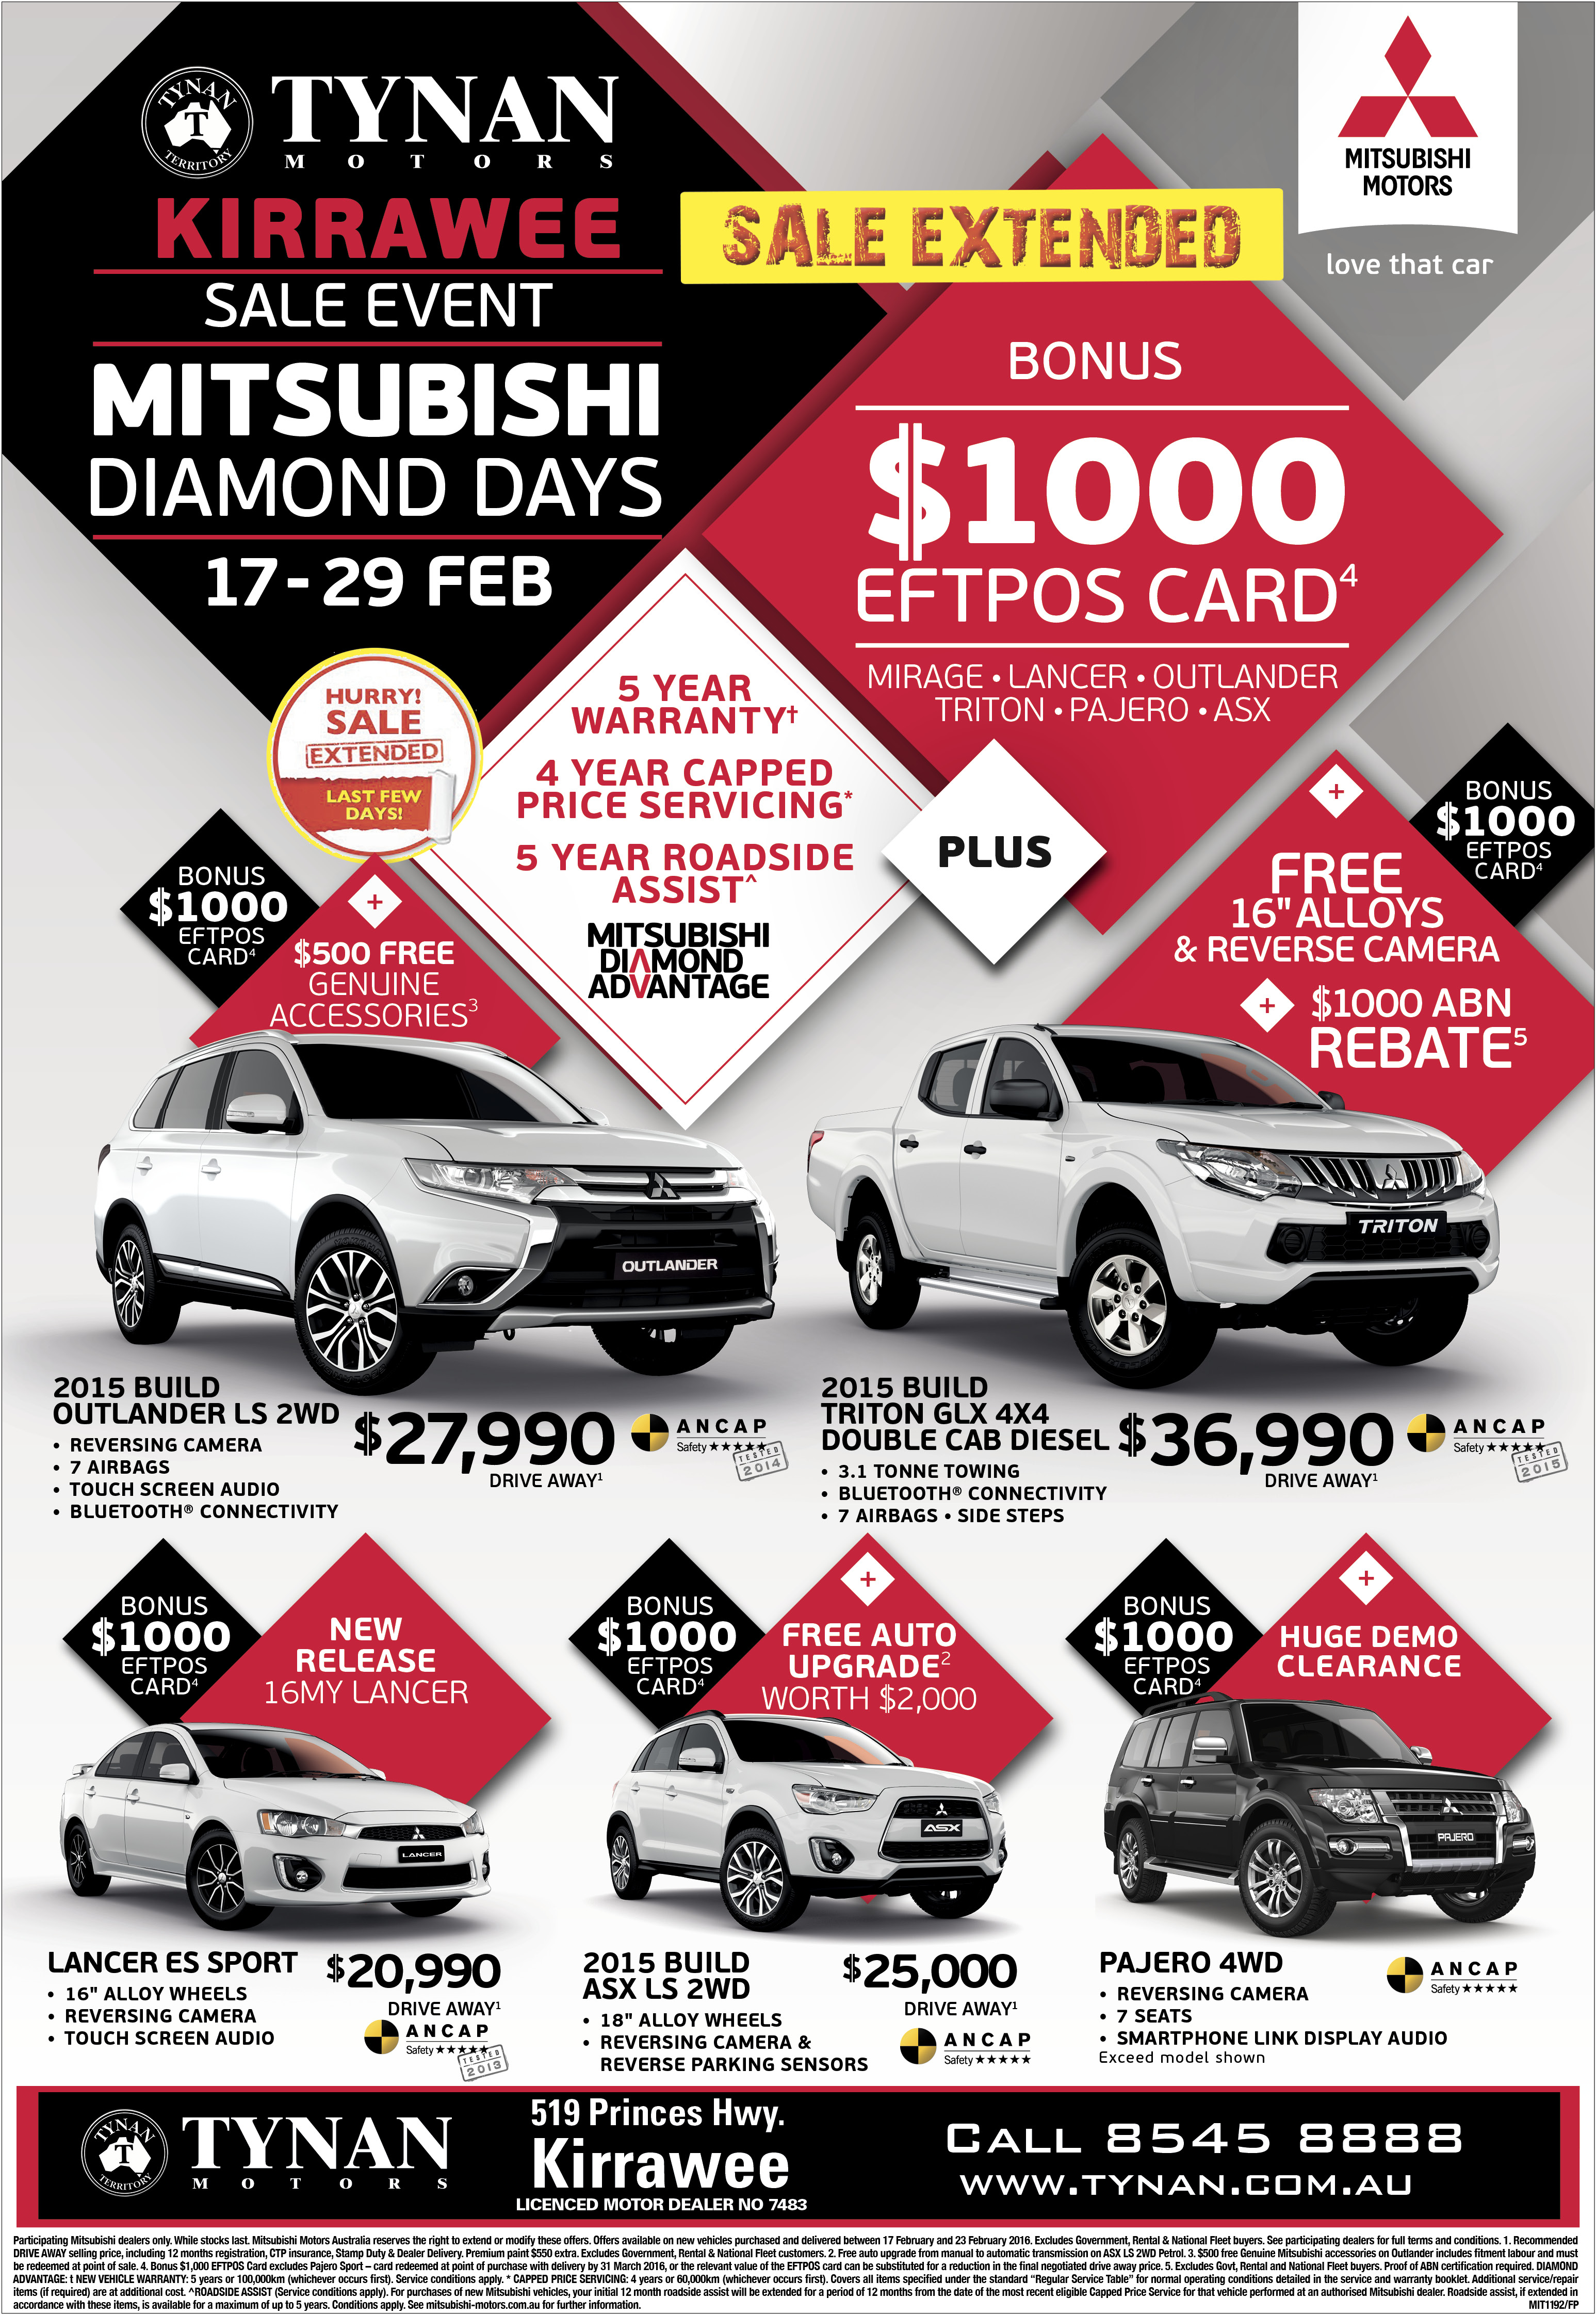 Mitsubishi diamond days sale